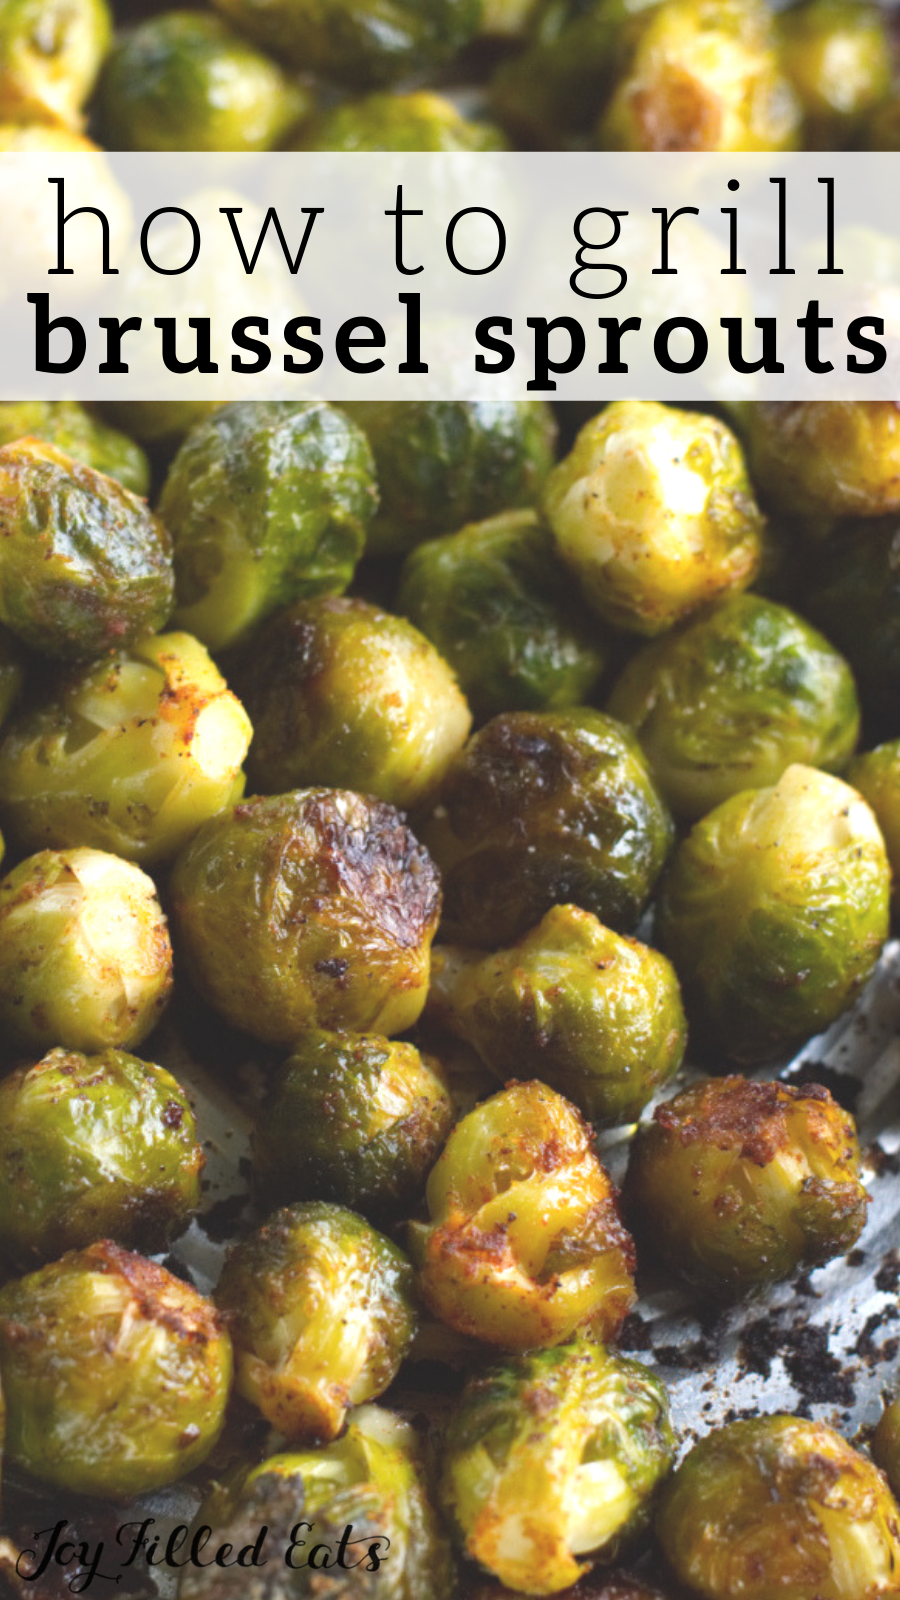 Grilled Brussel Sprouts Low Carb Keto Gluten Free Grain Free Thm S It S Summer And I M In Grilling Mode Grilled Brussel Sprouts Recipes Brussel Sprouts